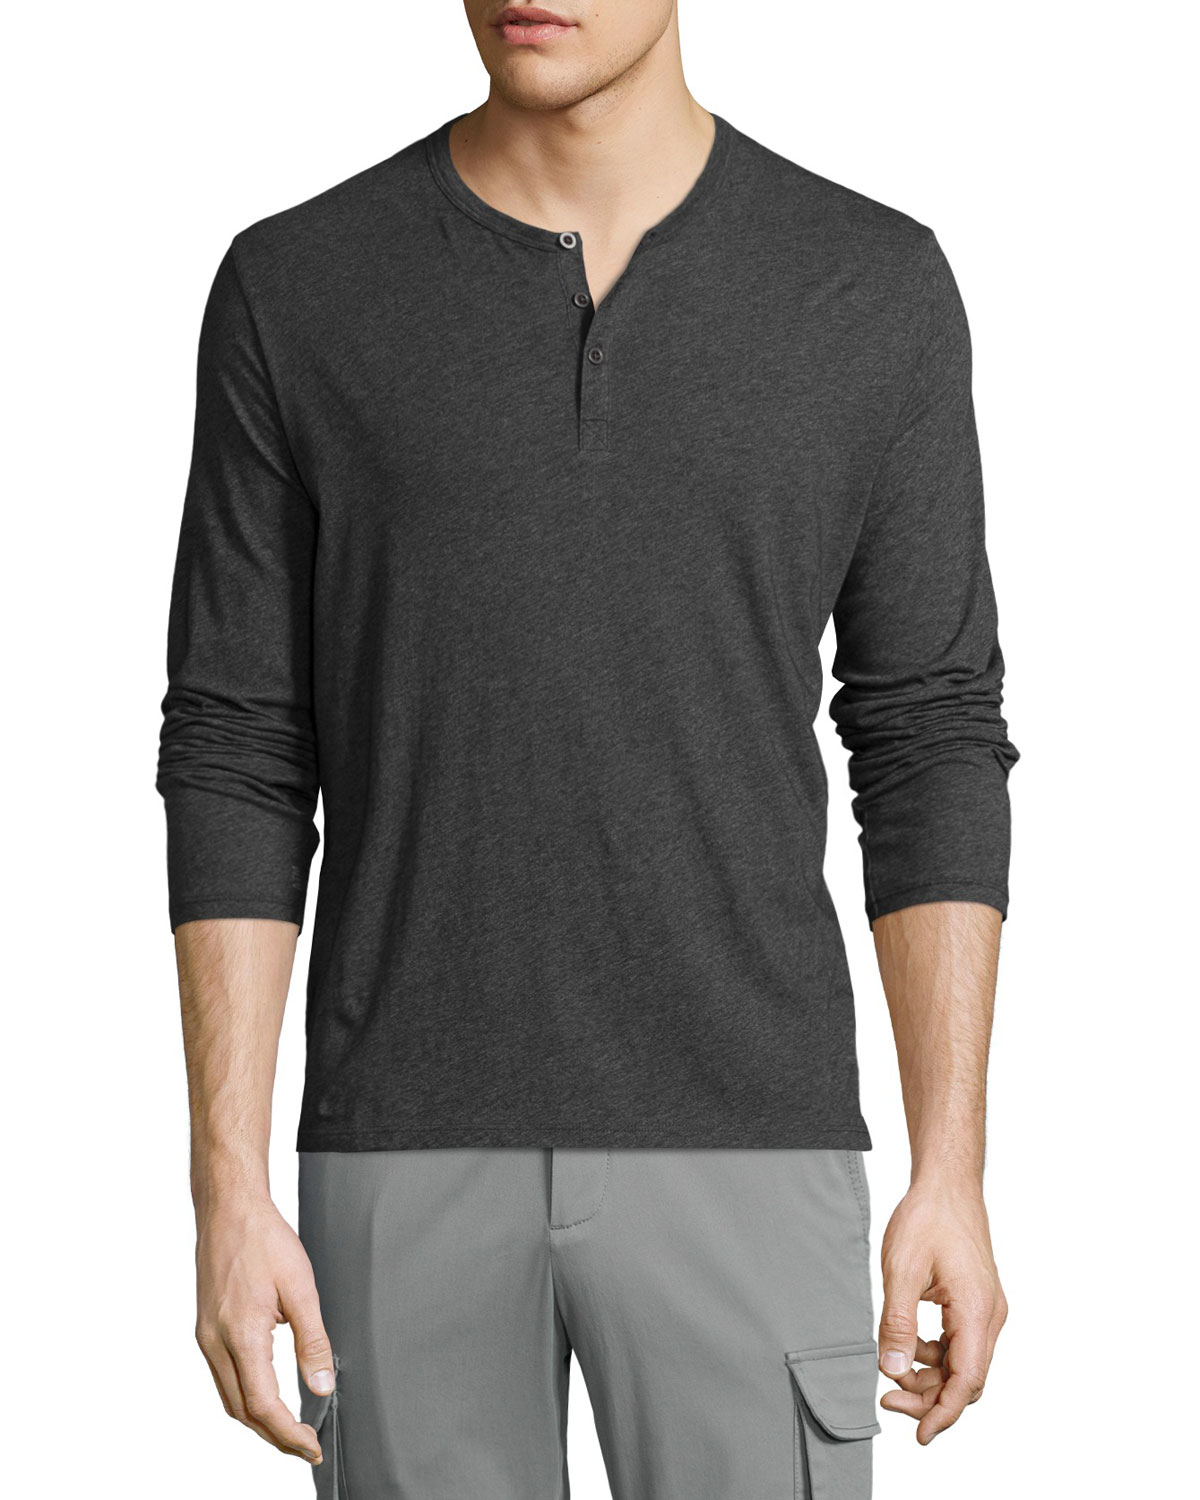 Shop for David Lerner Long Sleeve Henley T Shirt Dress in Classic Black at REVOLVE. Free day shipping and returns, 30 day price match guarantee. Shop for David Lerner Long Sleeve Henley T Shirt Dress in Classic Black at REVOLVE. Free day shipping and returns, 30 day price match guarantee.